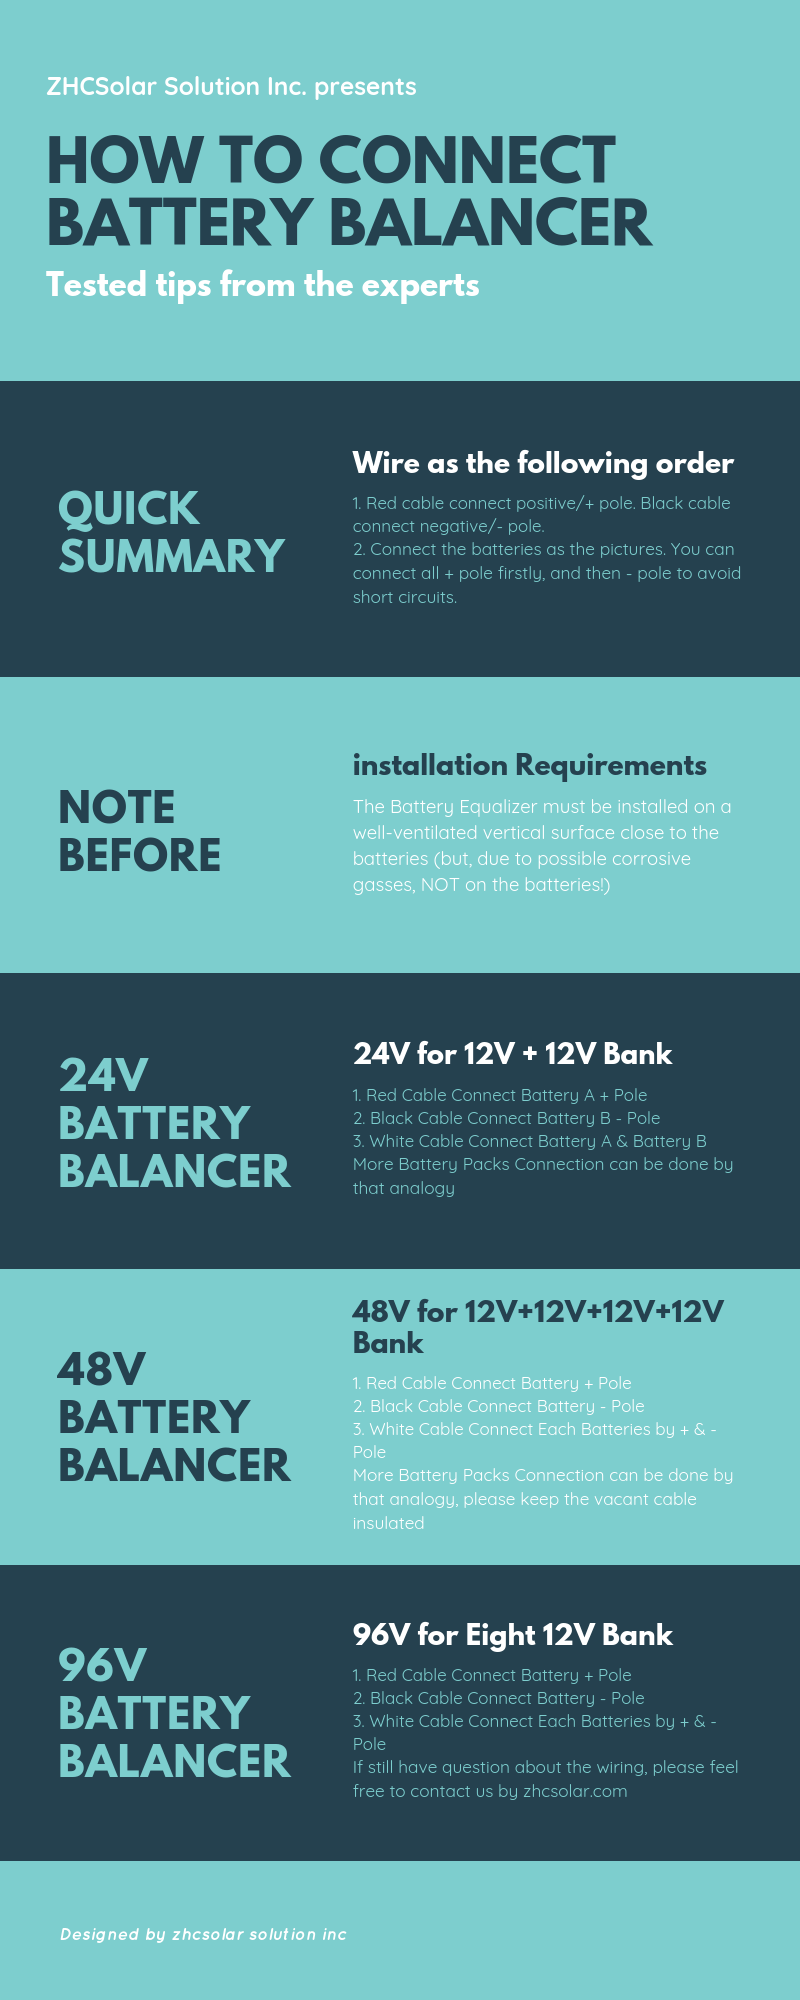 How to Wire Battery Balancer in 3 Easy Steps - GuideZHCSolar